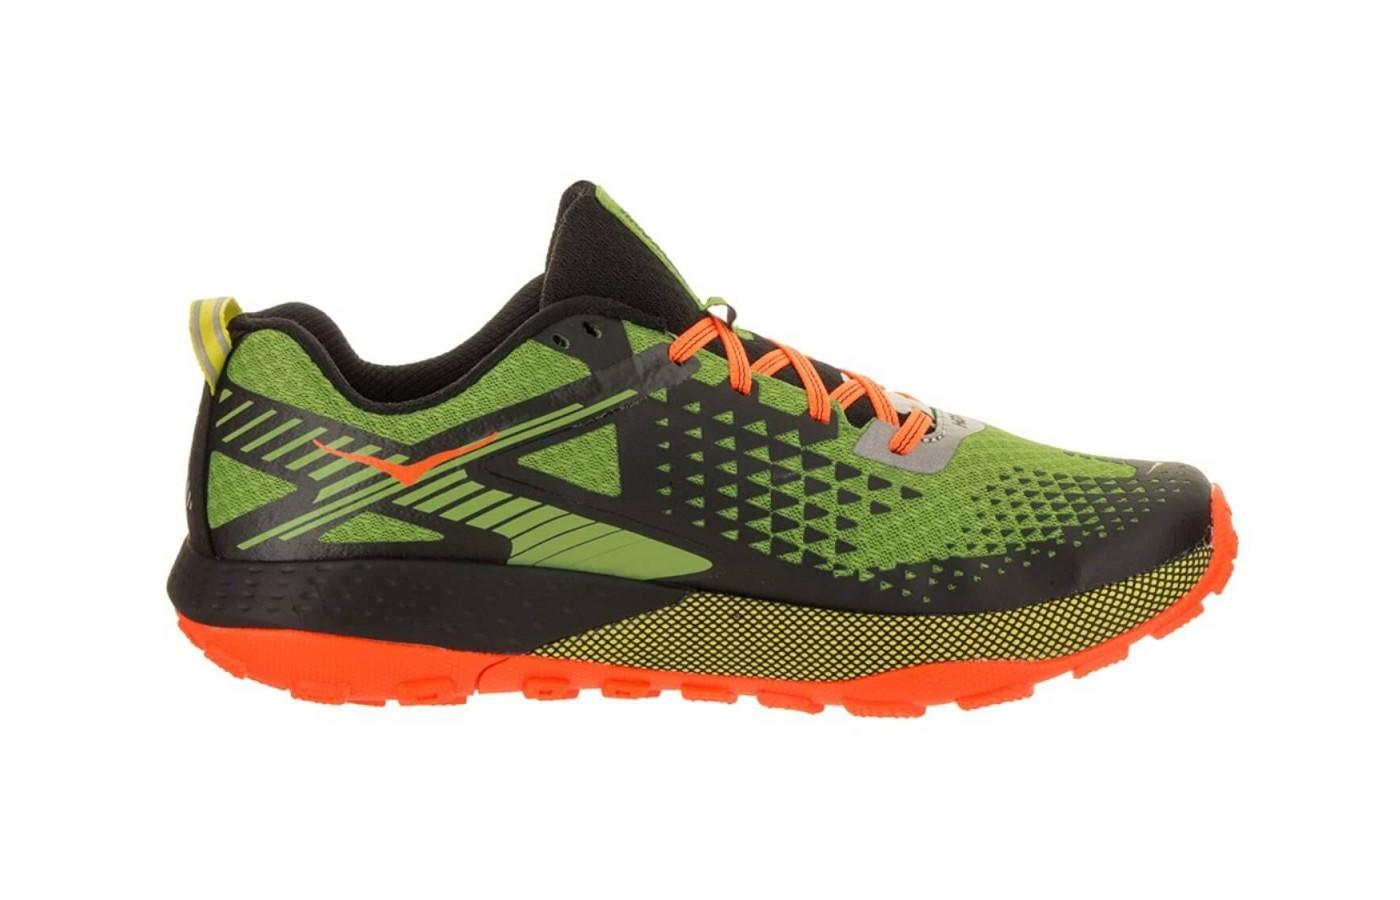 the Hoka One One Speed Instinct 2 is a highly breathable low-cut trail runner